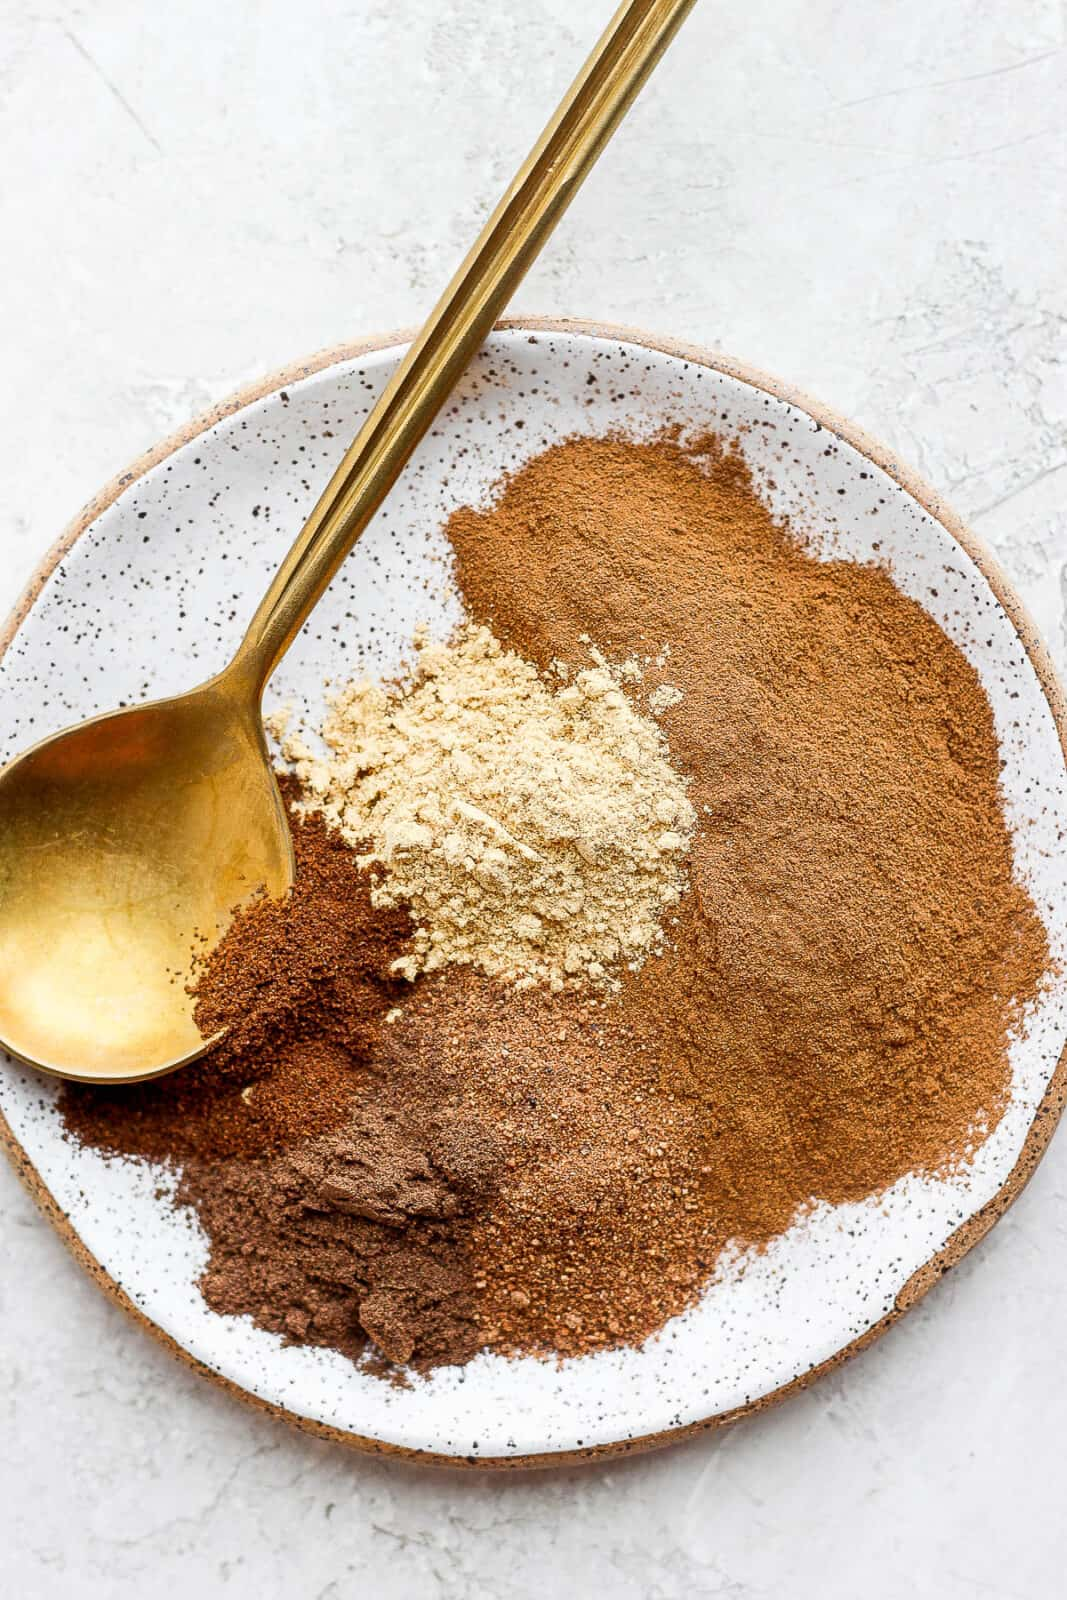 Pumpkin spice ingredients on a plate with a spoon.